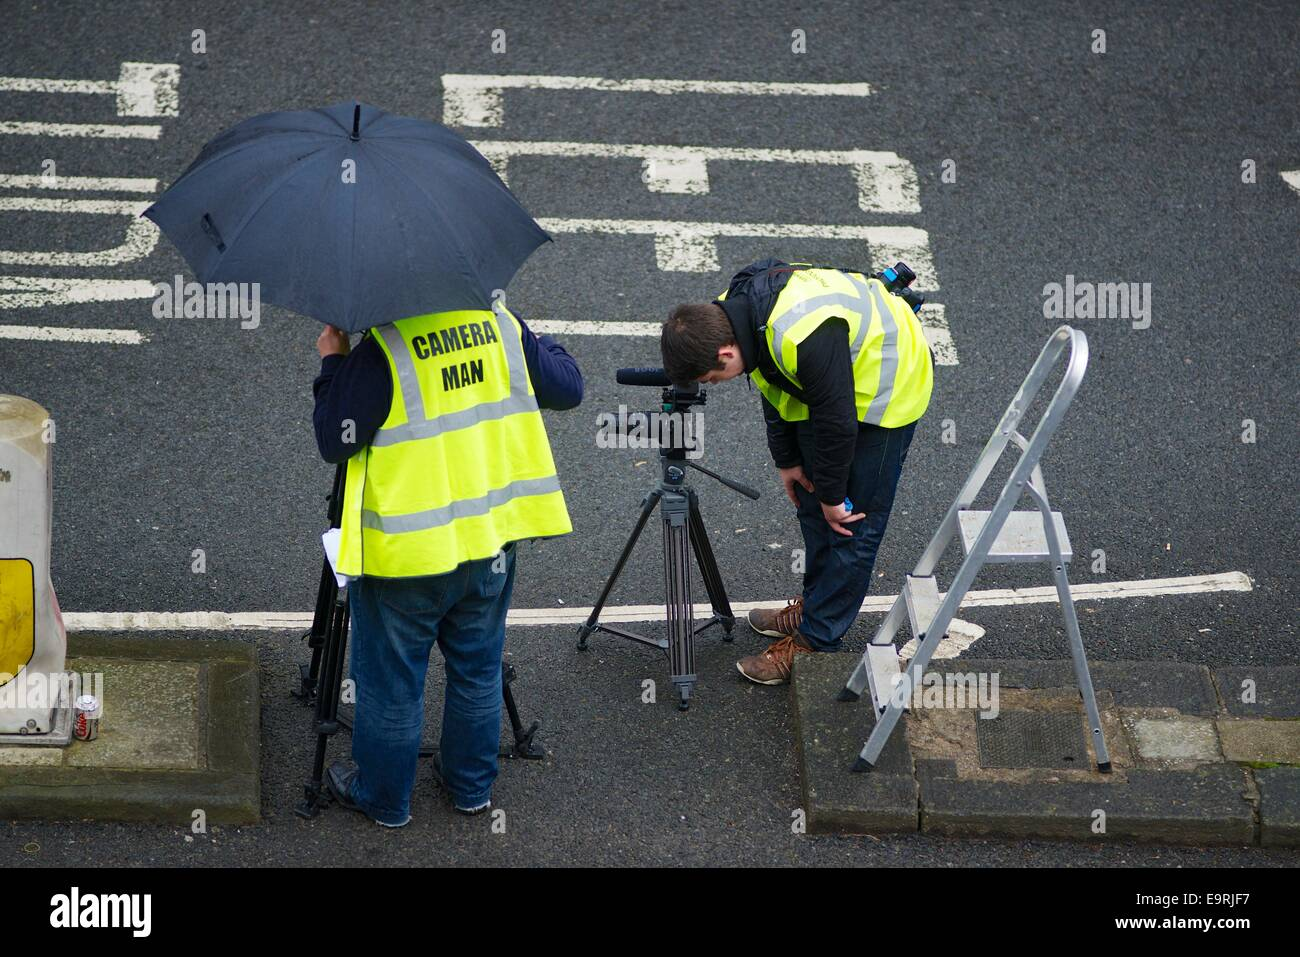 Official Cameramen at Bath Half Marathon - Stock Image